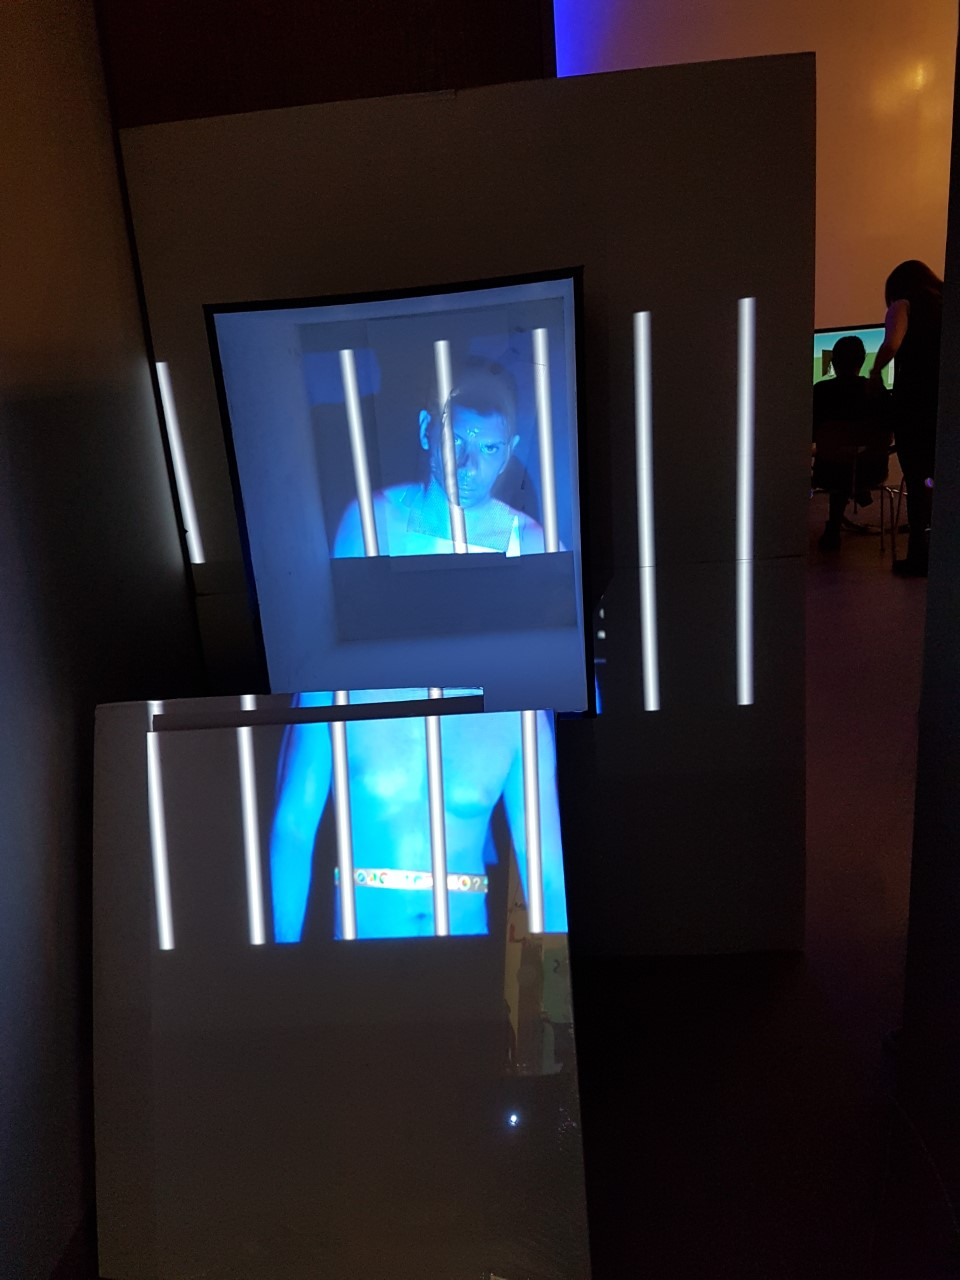 The cyber prison- A 3D holographic sculpture shown at Tate Britain Late event in Aug 2019. The theme being time and history . The work imagines a world of futuristic penal cyber technology where inmates serve out their terms in a virtual prison. This commissioned work references Tate Britain's site in 1800's when it was still the notorious Millbank Prison.